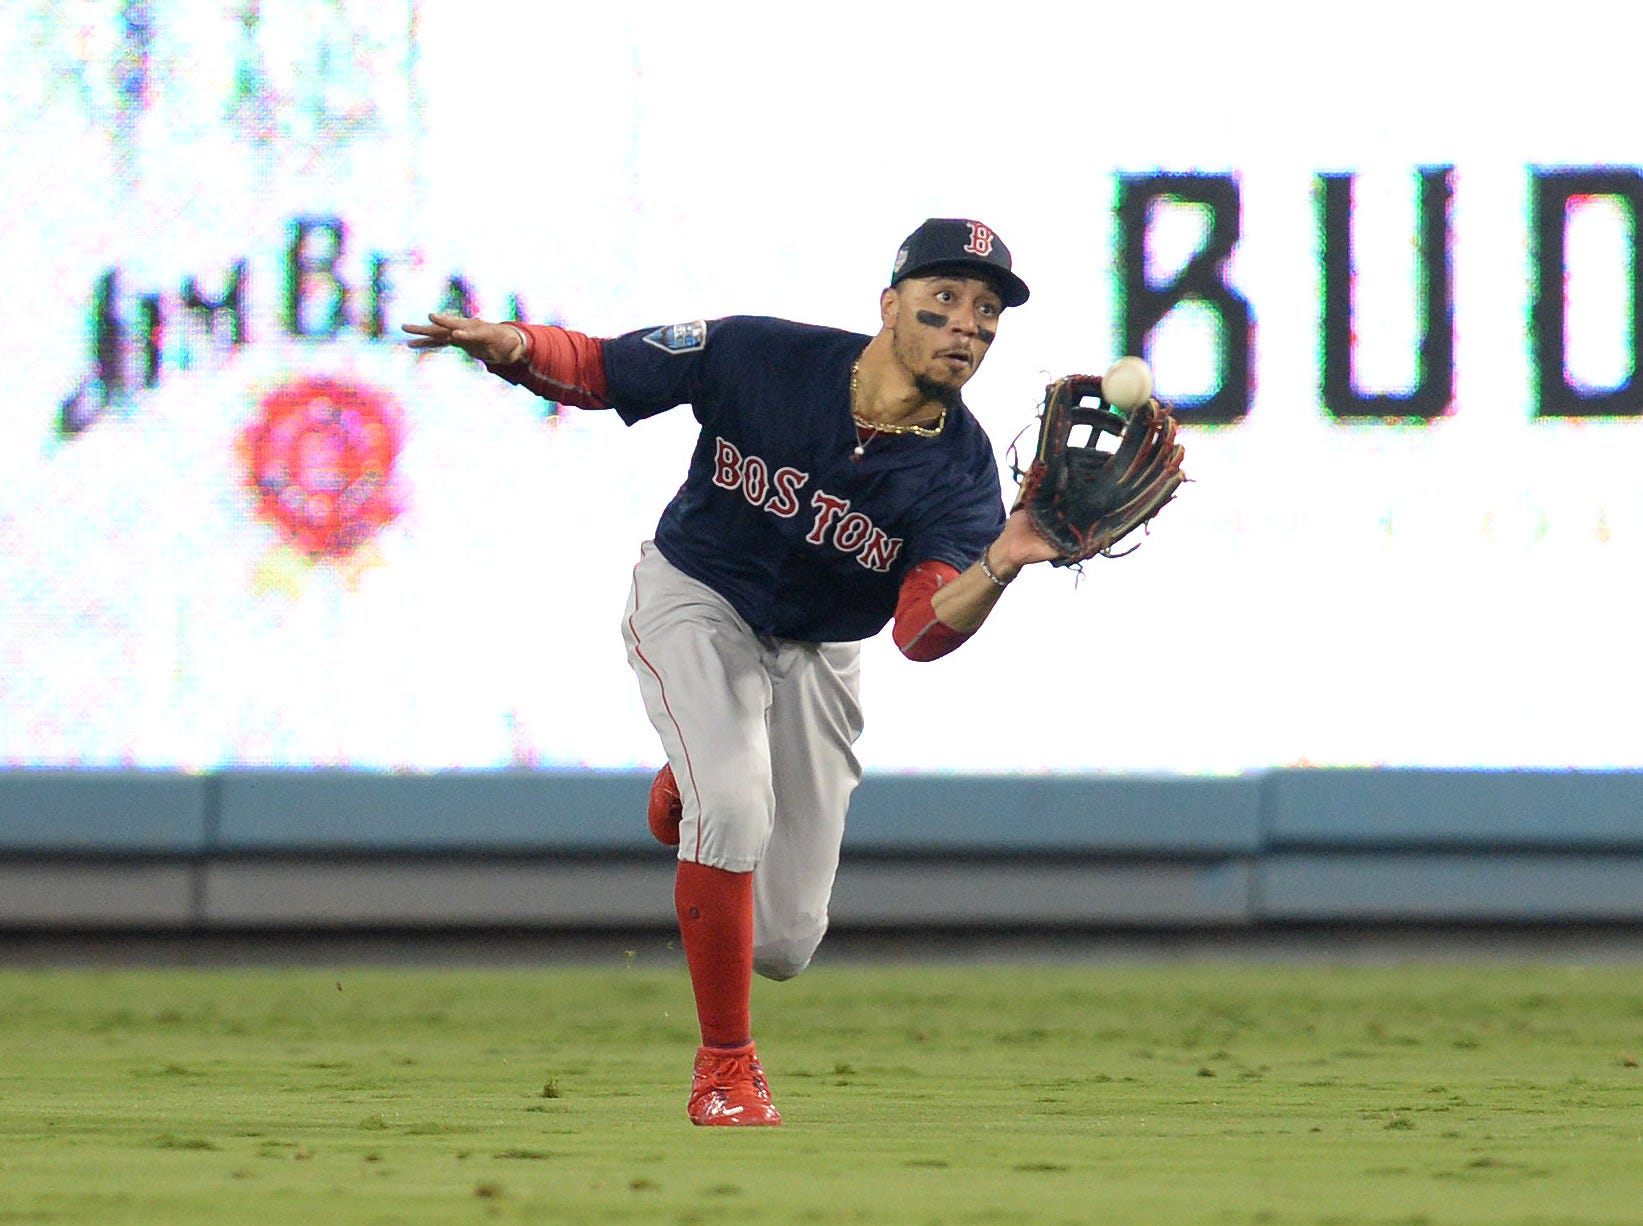 Game 3 at Dodger Stadium: Mookie Betts makes a catch in the sixth inning.